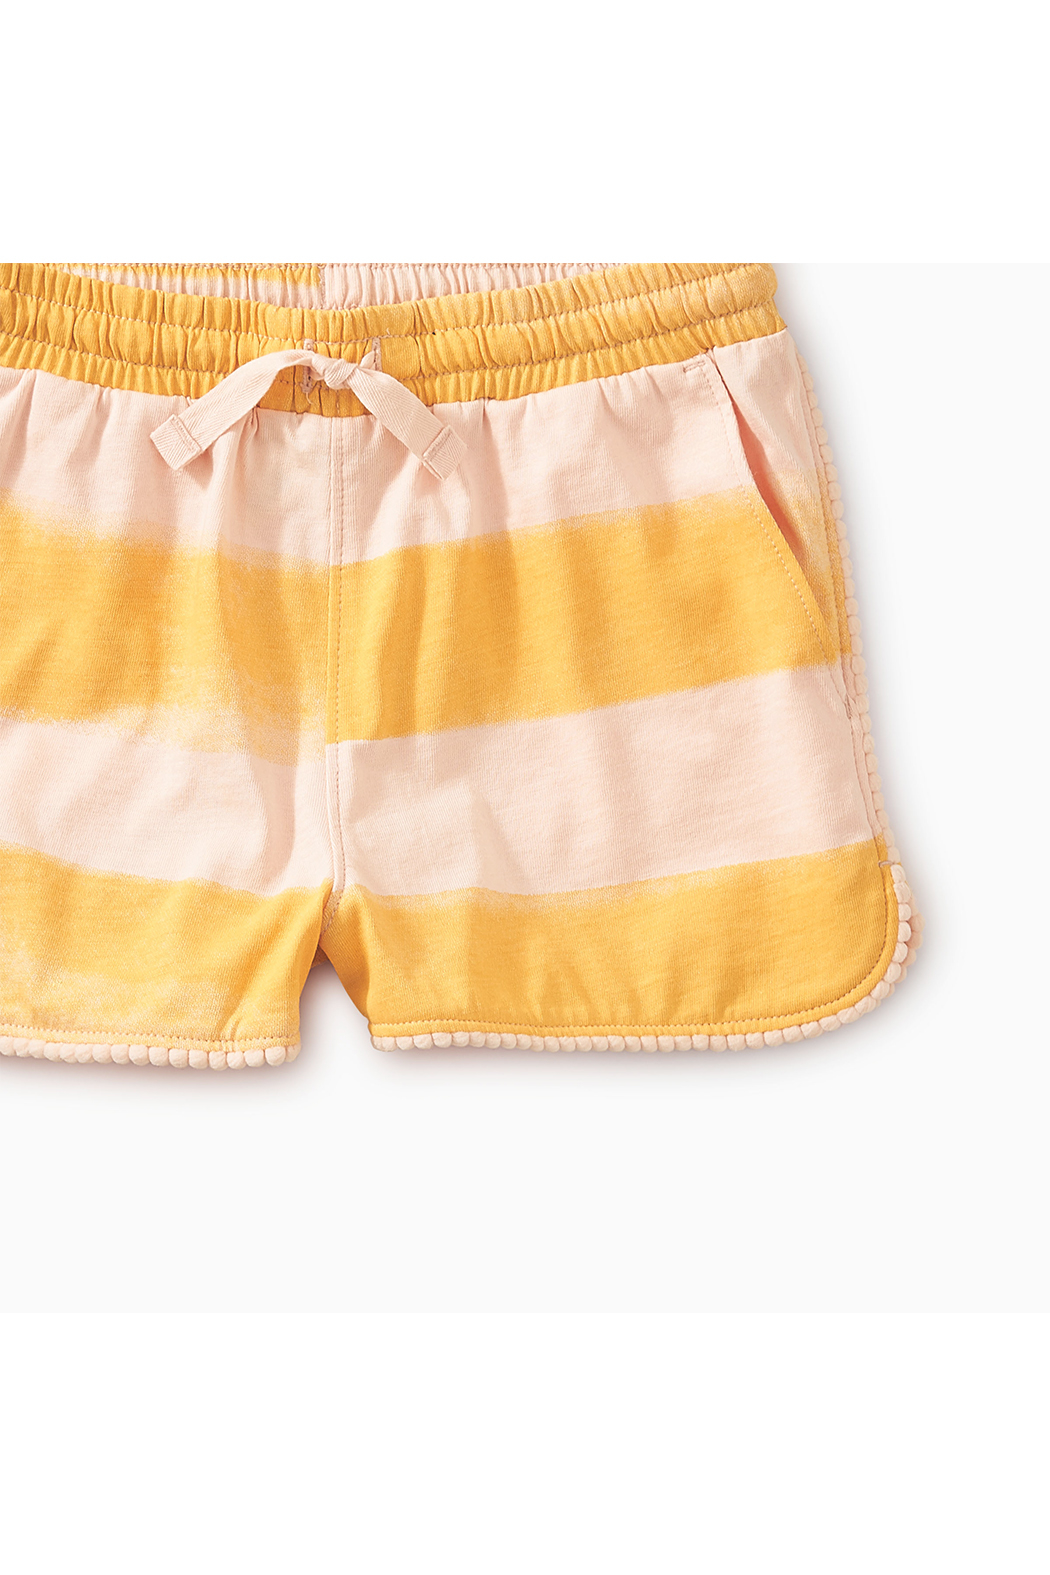 Tea Collection Pom Pom Dolphin Shorts - Front Full Image